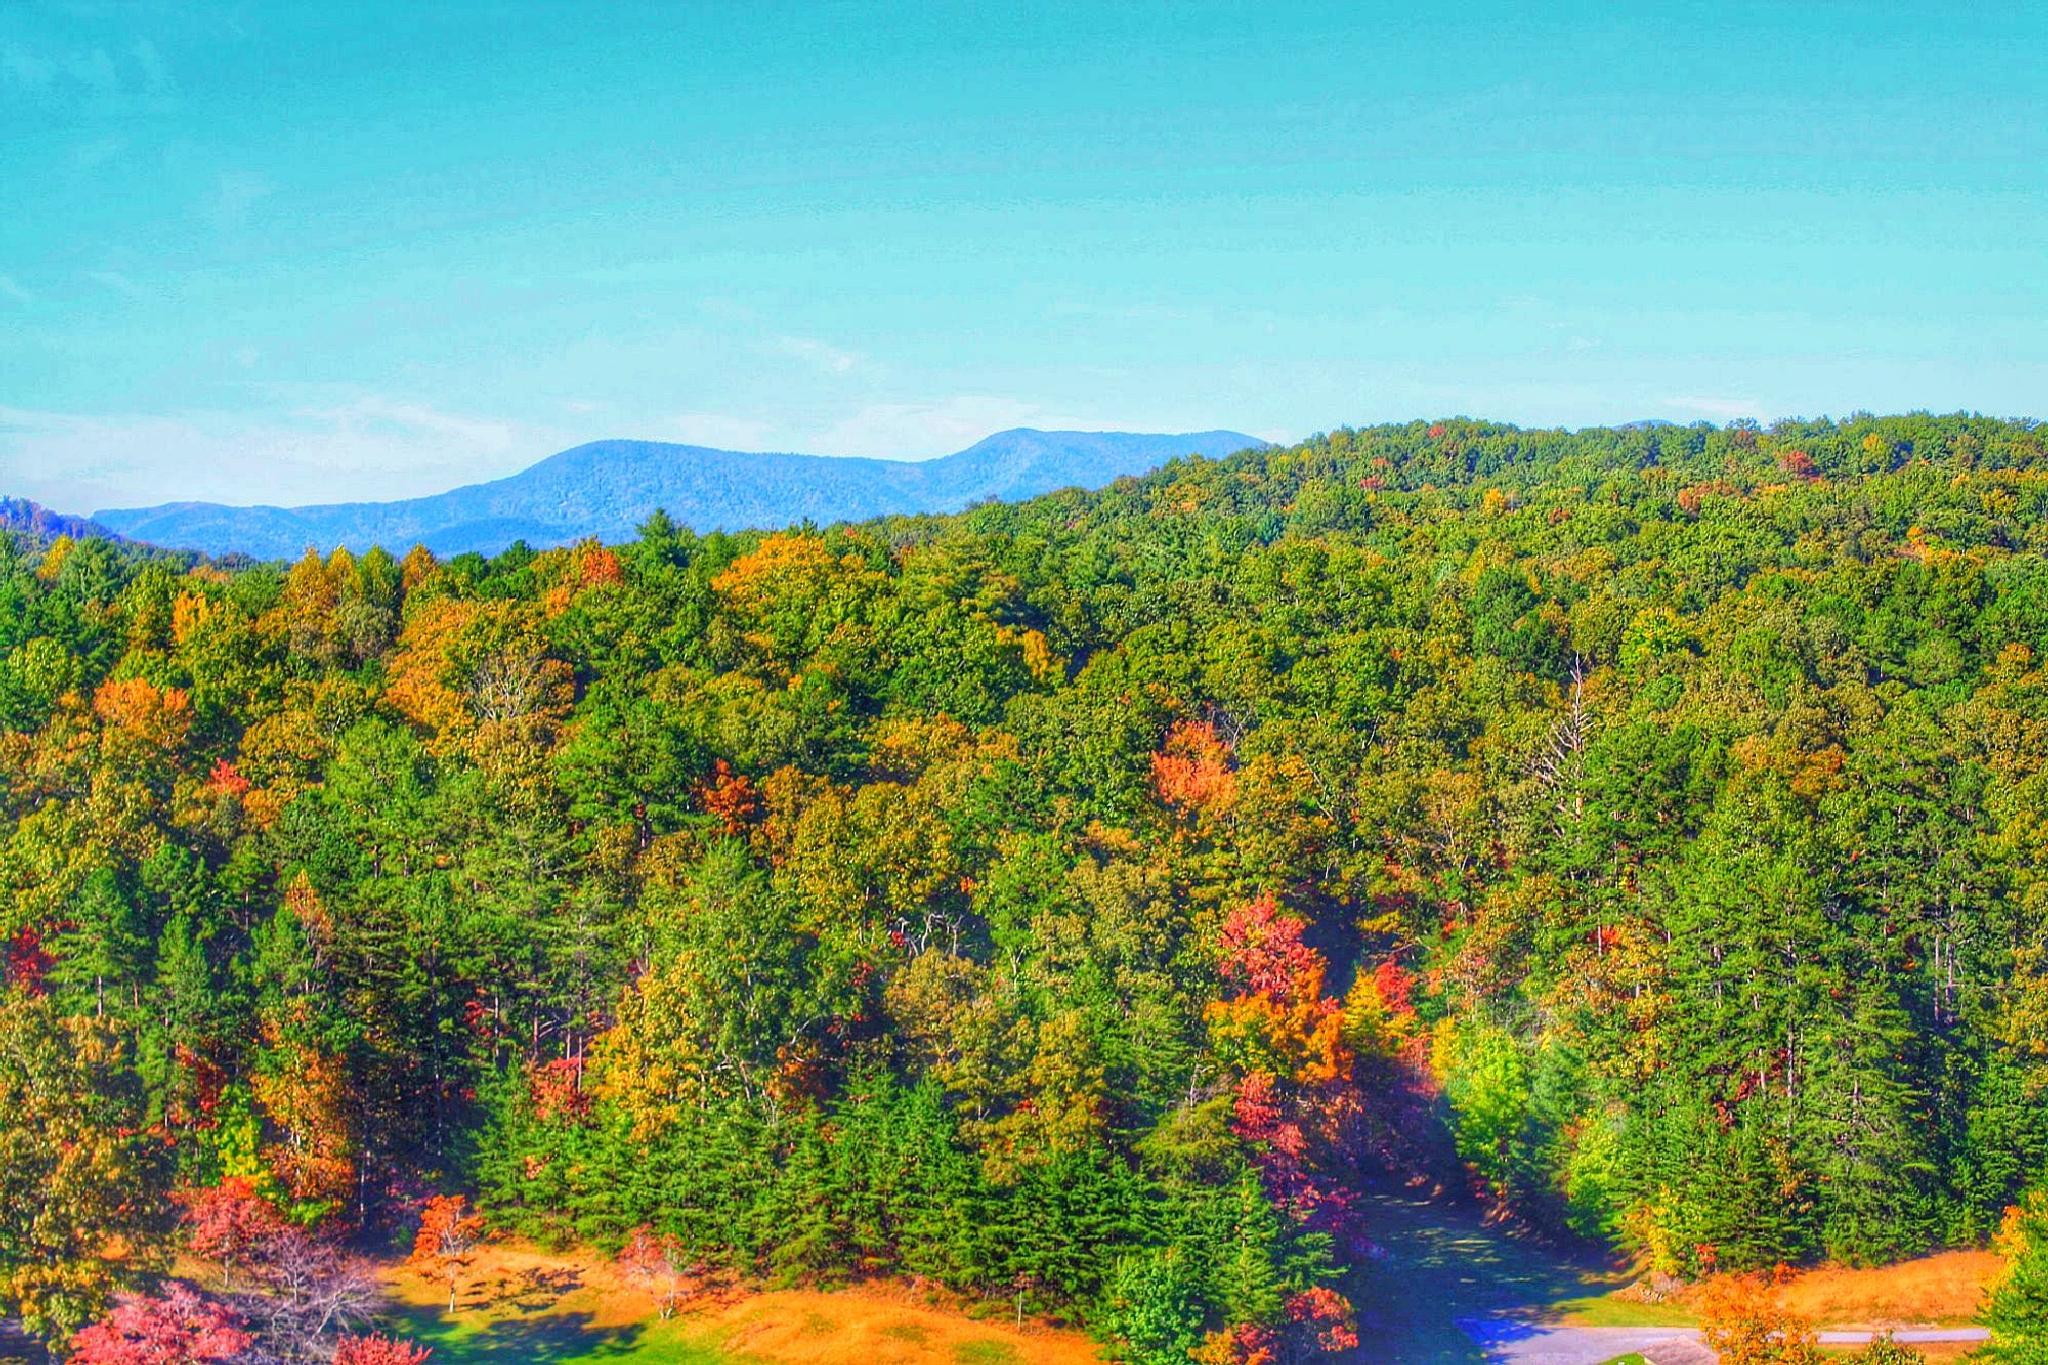 Fall leaves in the Blue ridge mountains by amy.conger.9